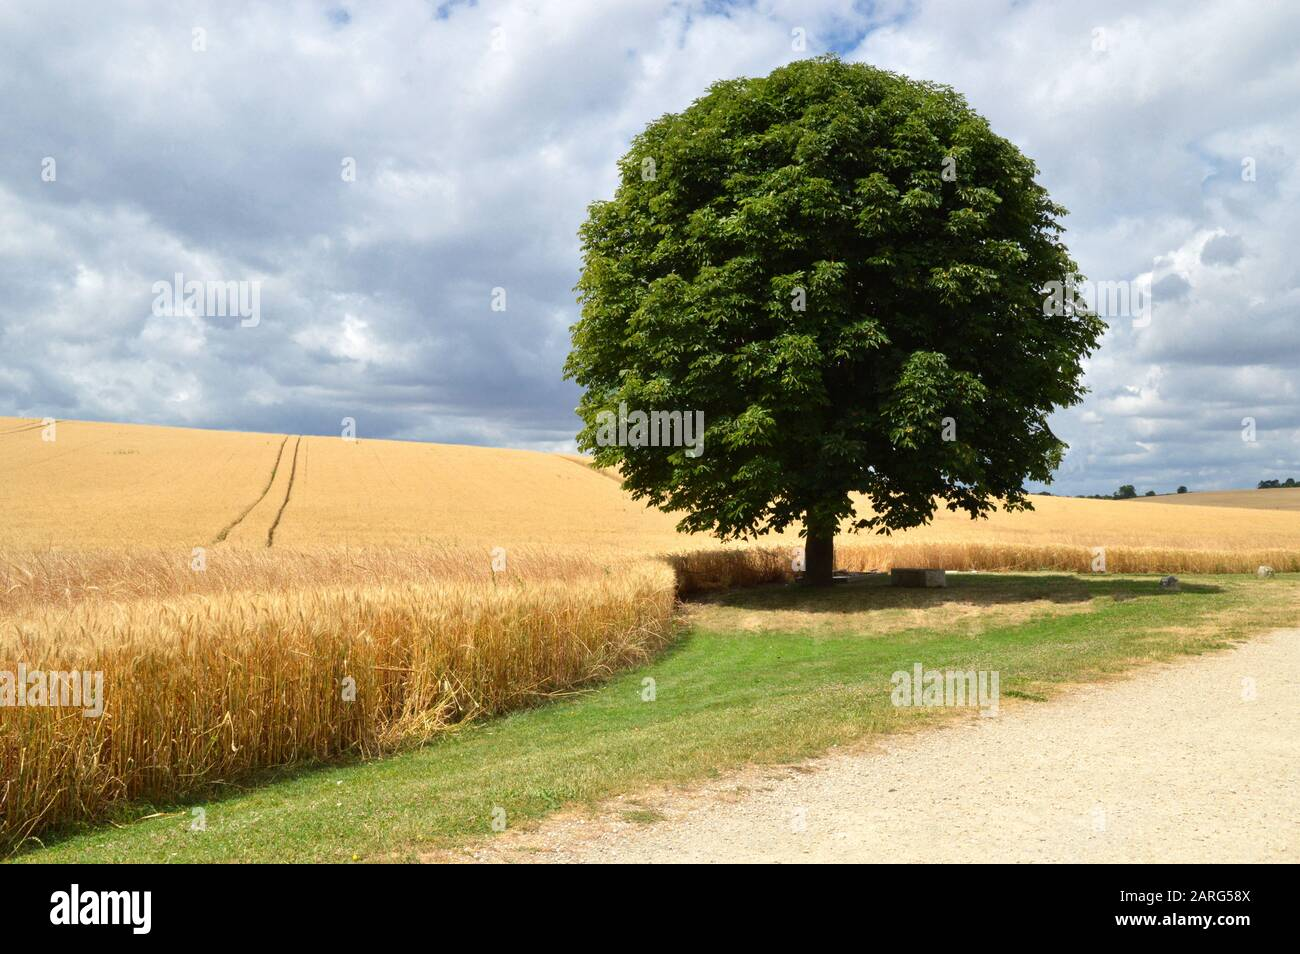 Nice Landscape With Wheat Field And Tree Oak Stock Photo Alamy